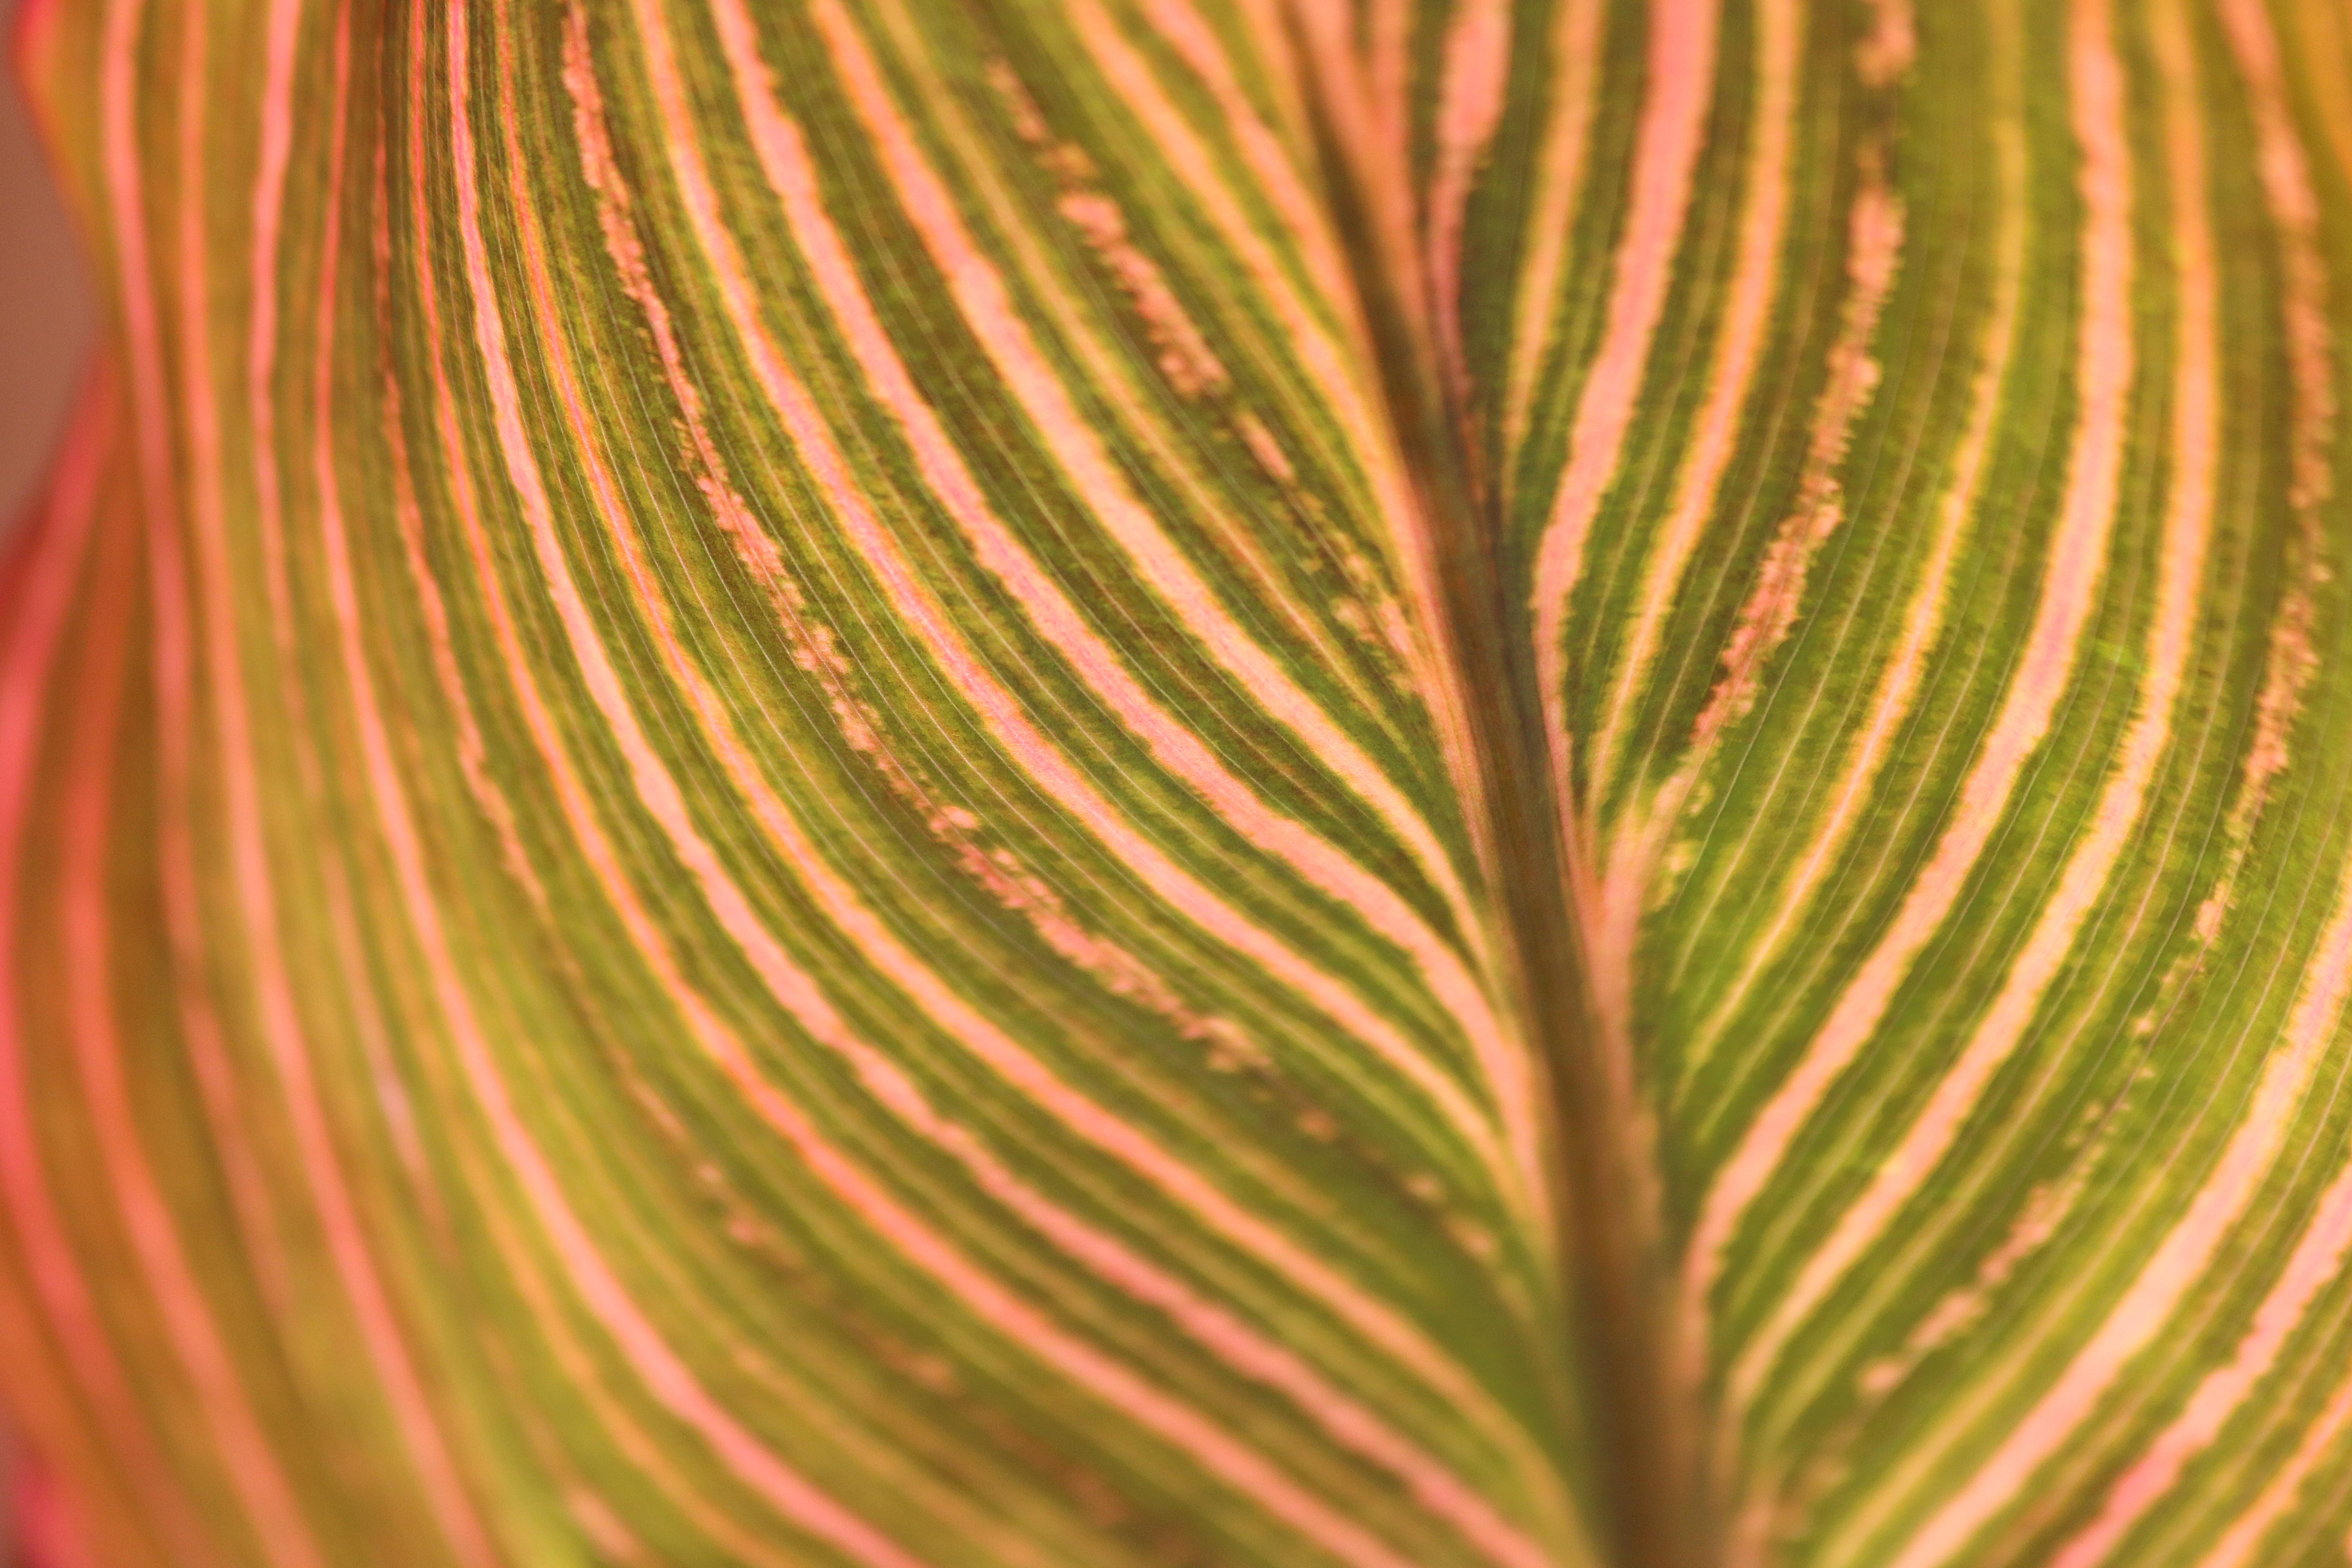 pattern of lines on a leaf